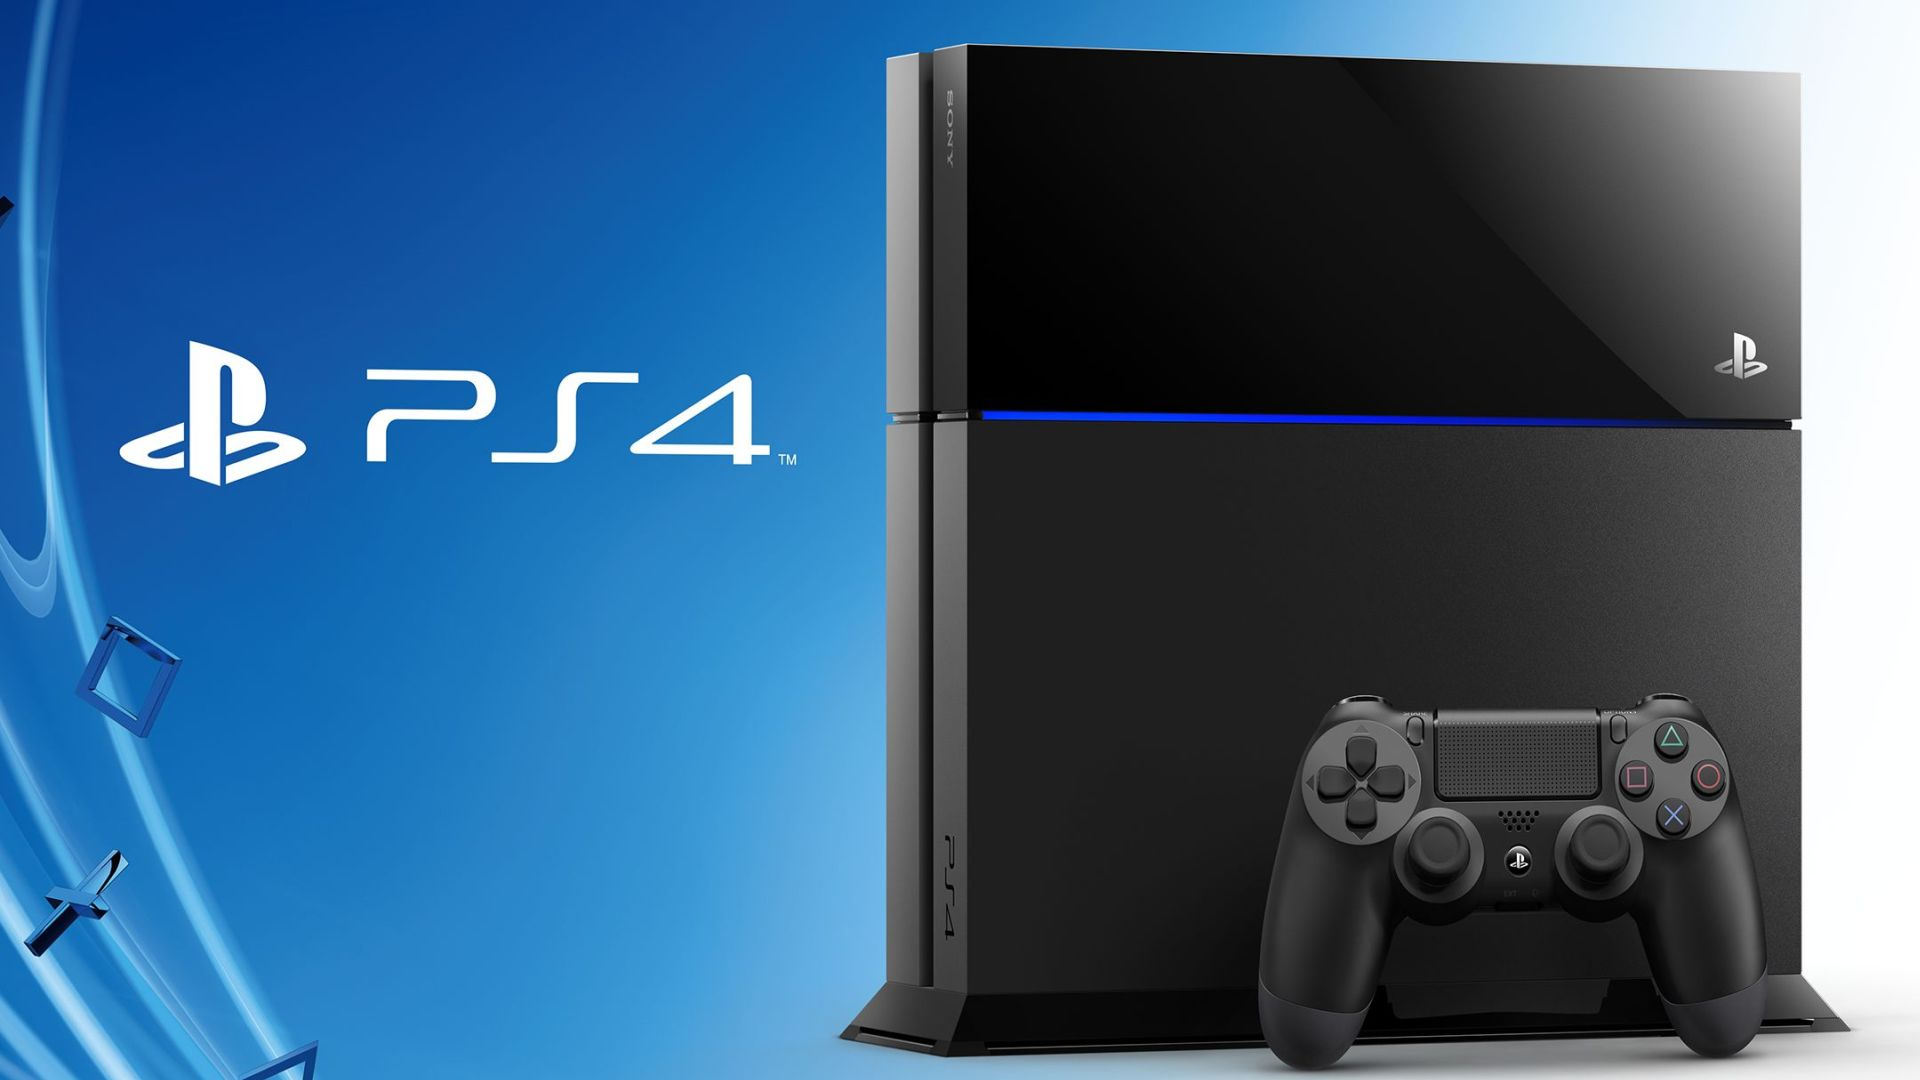 sony, ps2, kaz hirai, playstation 4, e3 2014